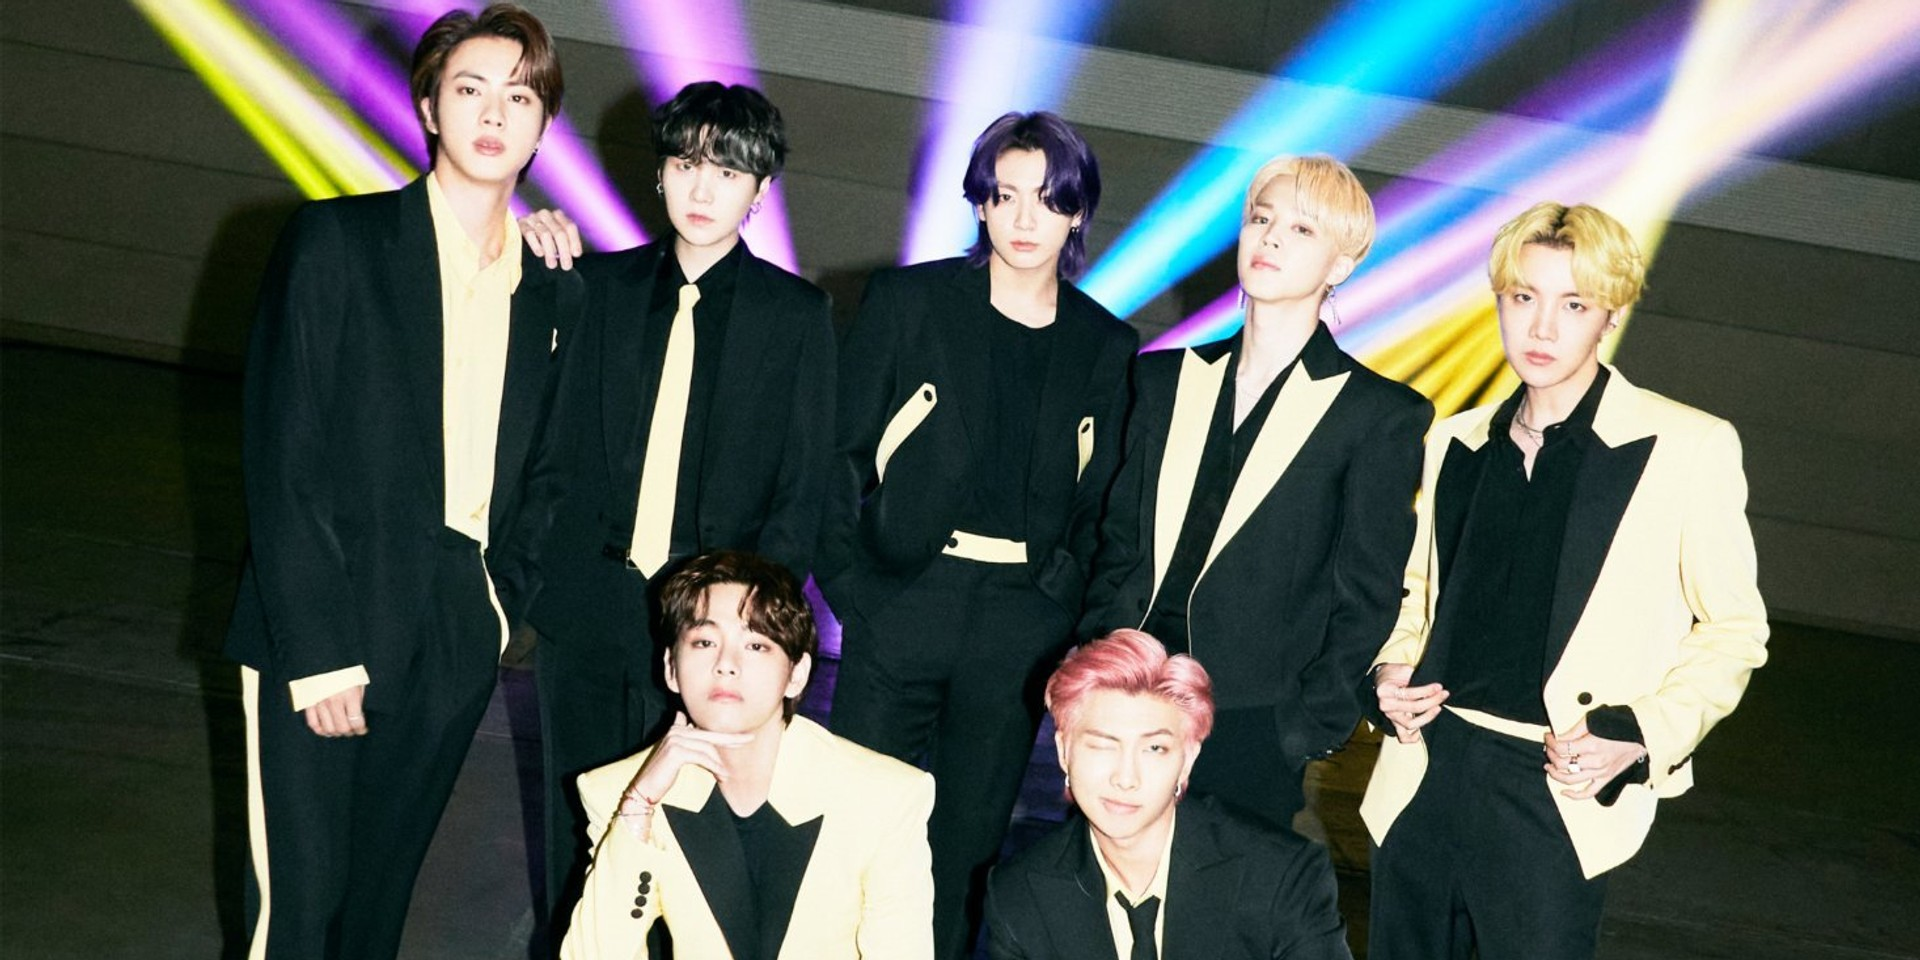 BTS score fourth Billboard Hot 100 number 1 hit with 'Butter,' only group with multiple number 1 debuts